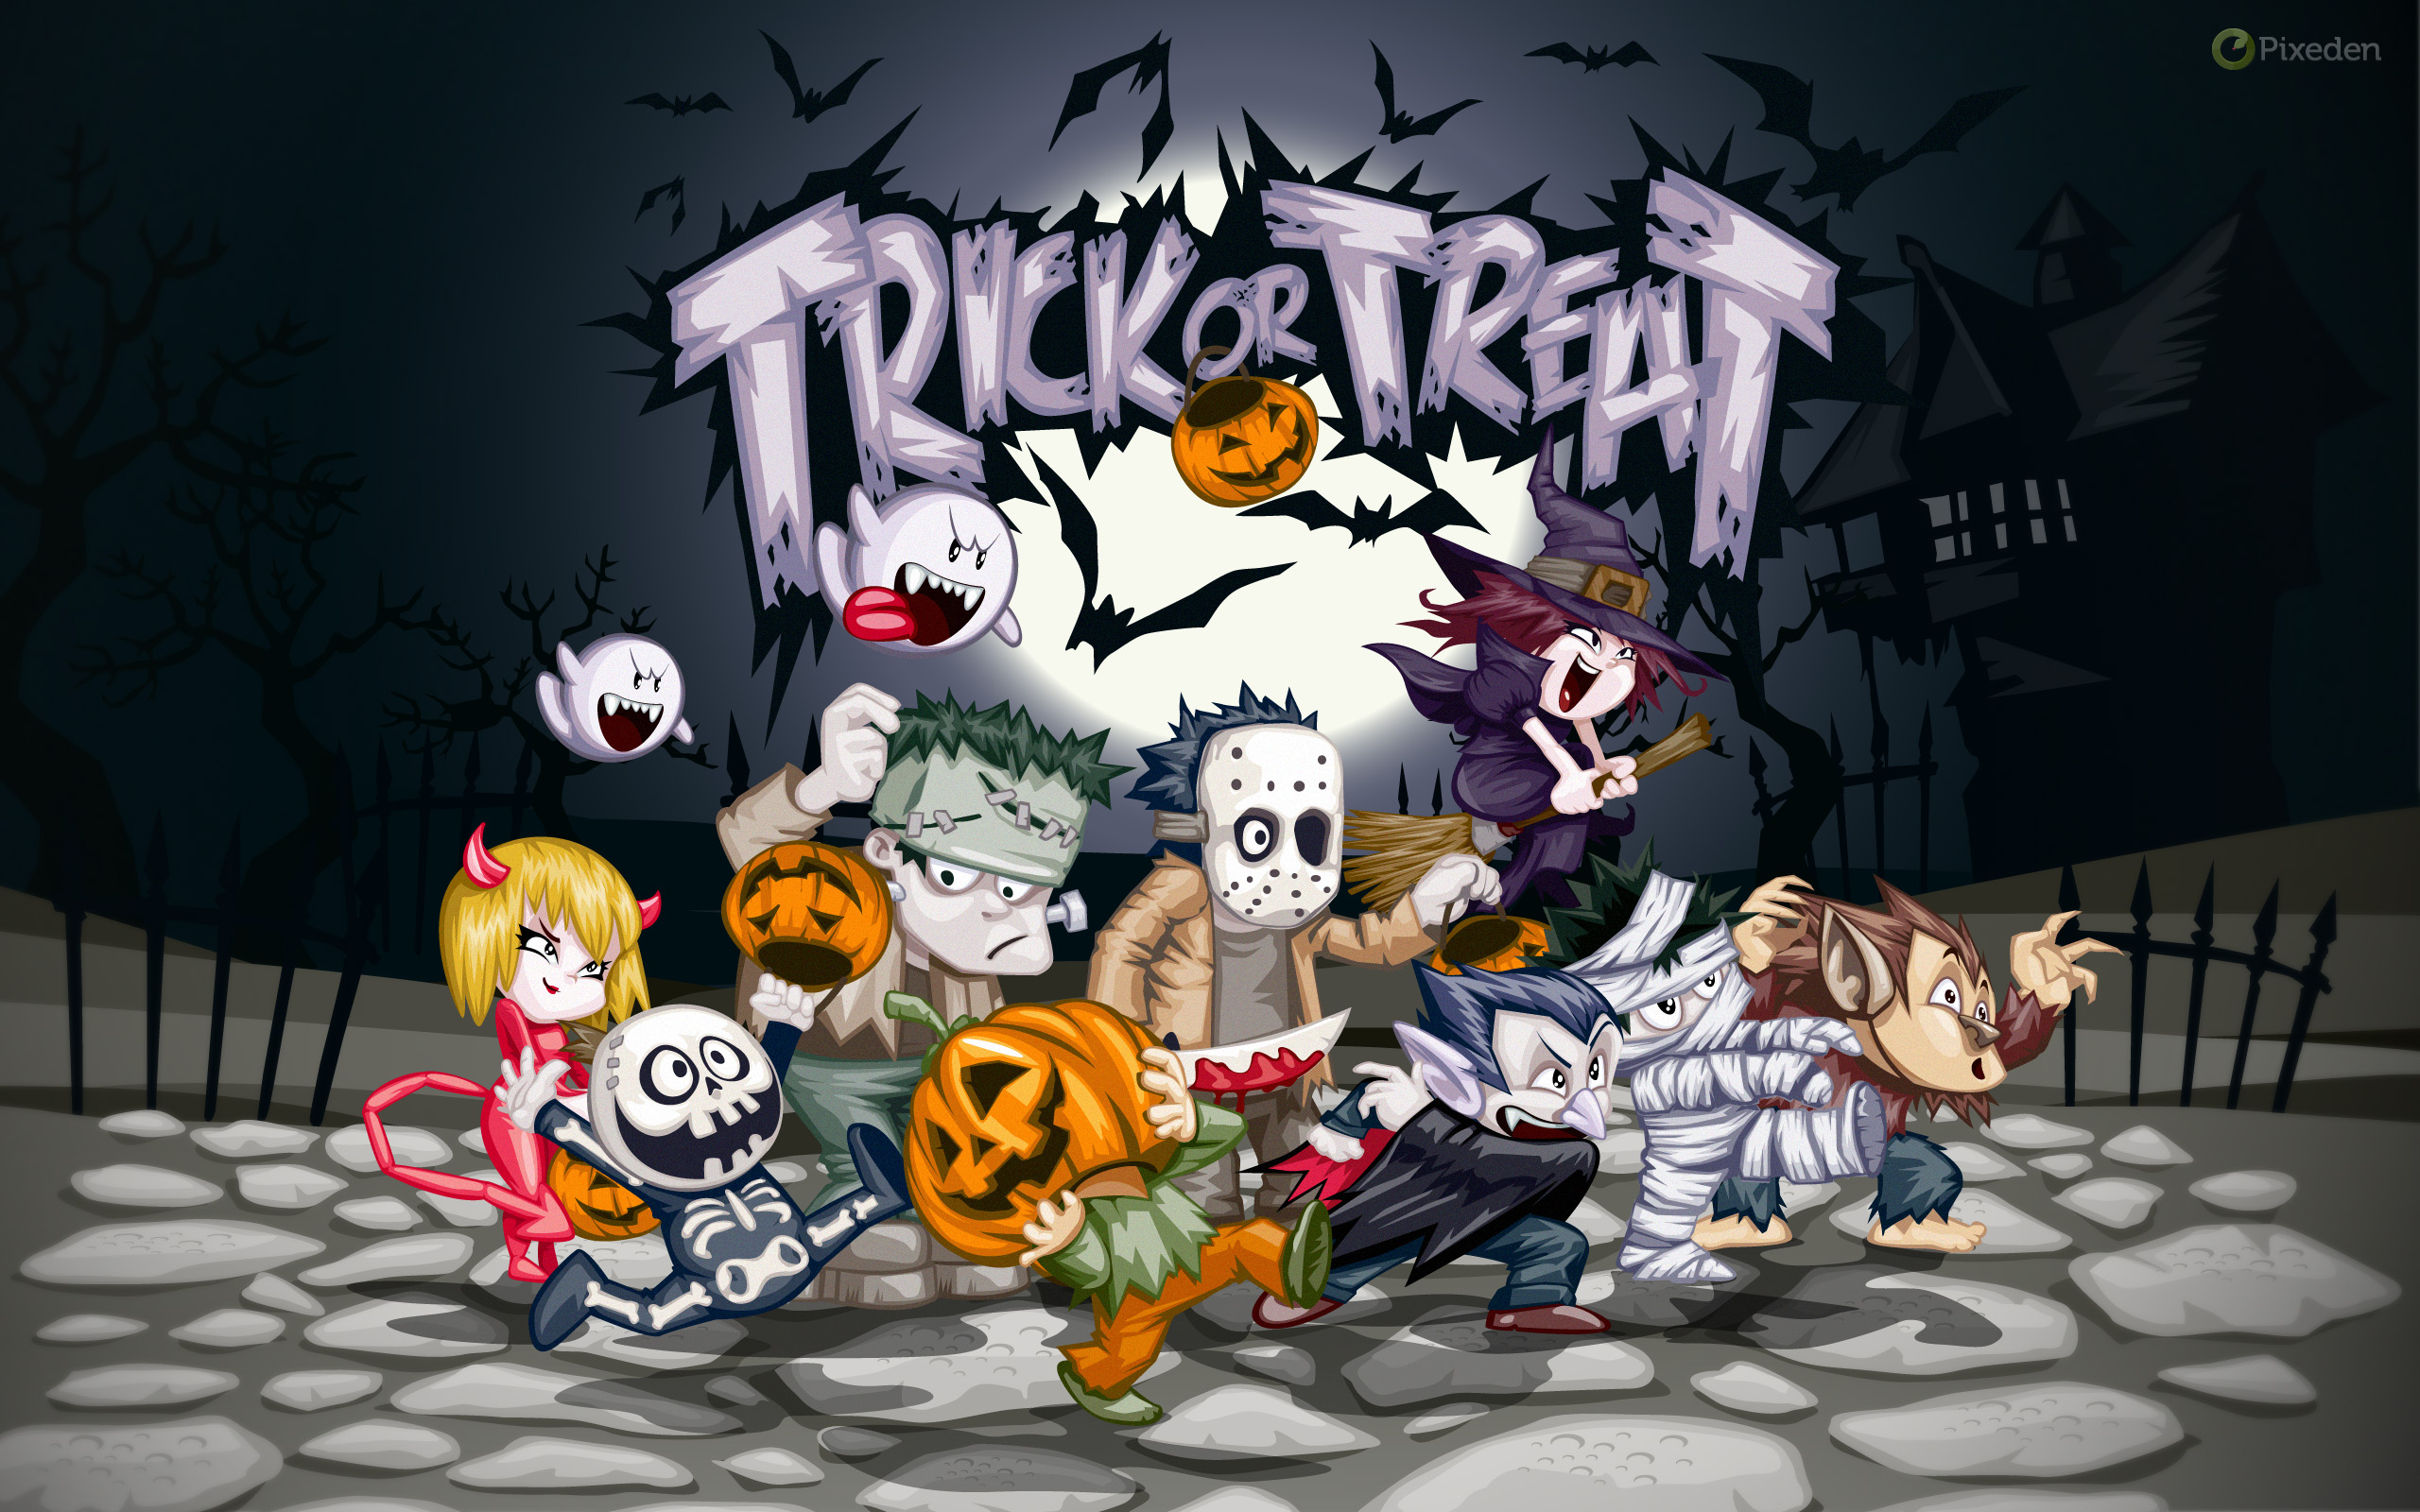 Halloween Wallpaper Widescreen Pixeden Sep 2011